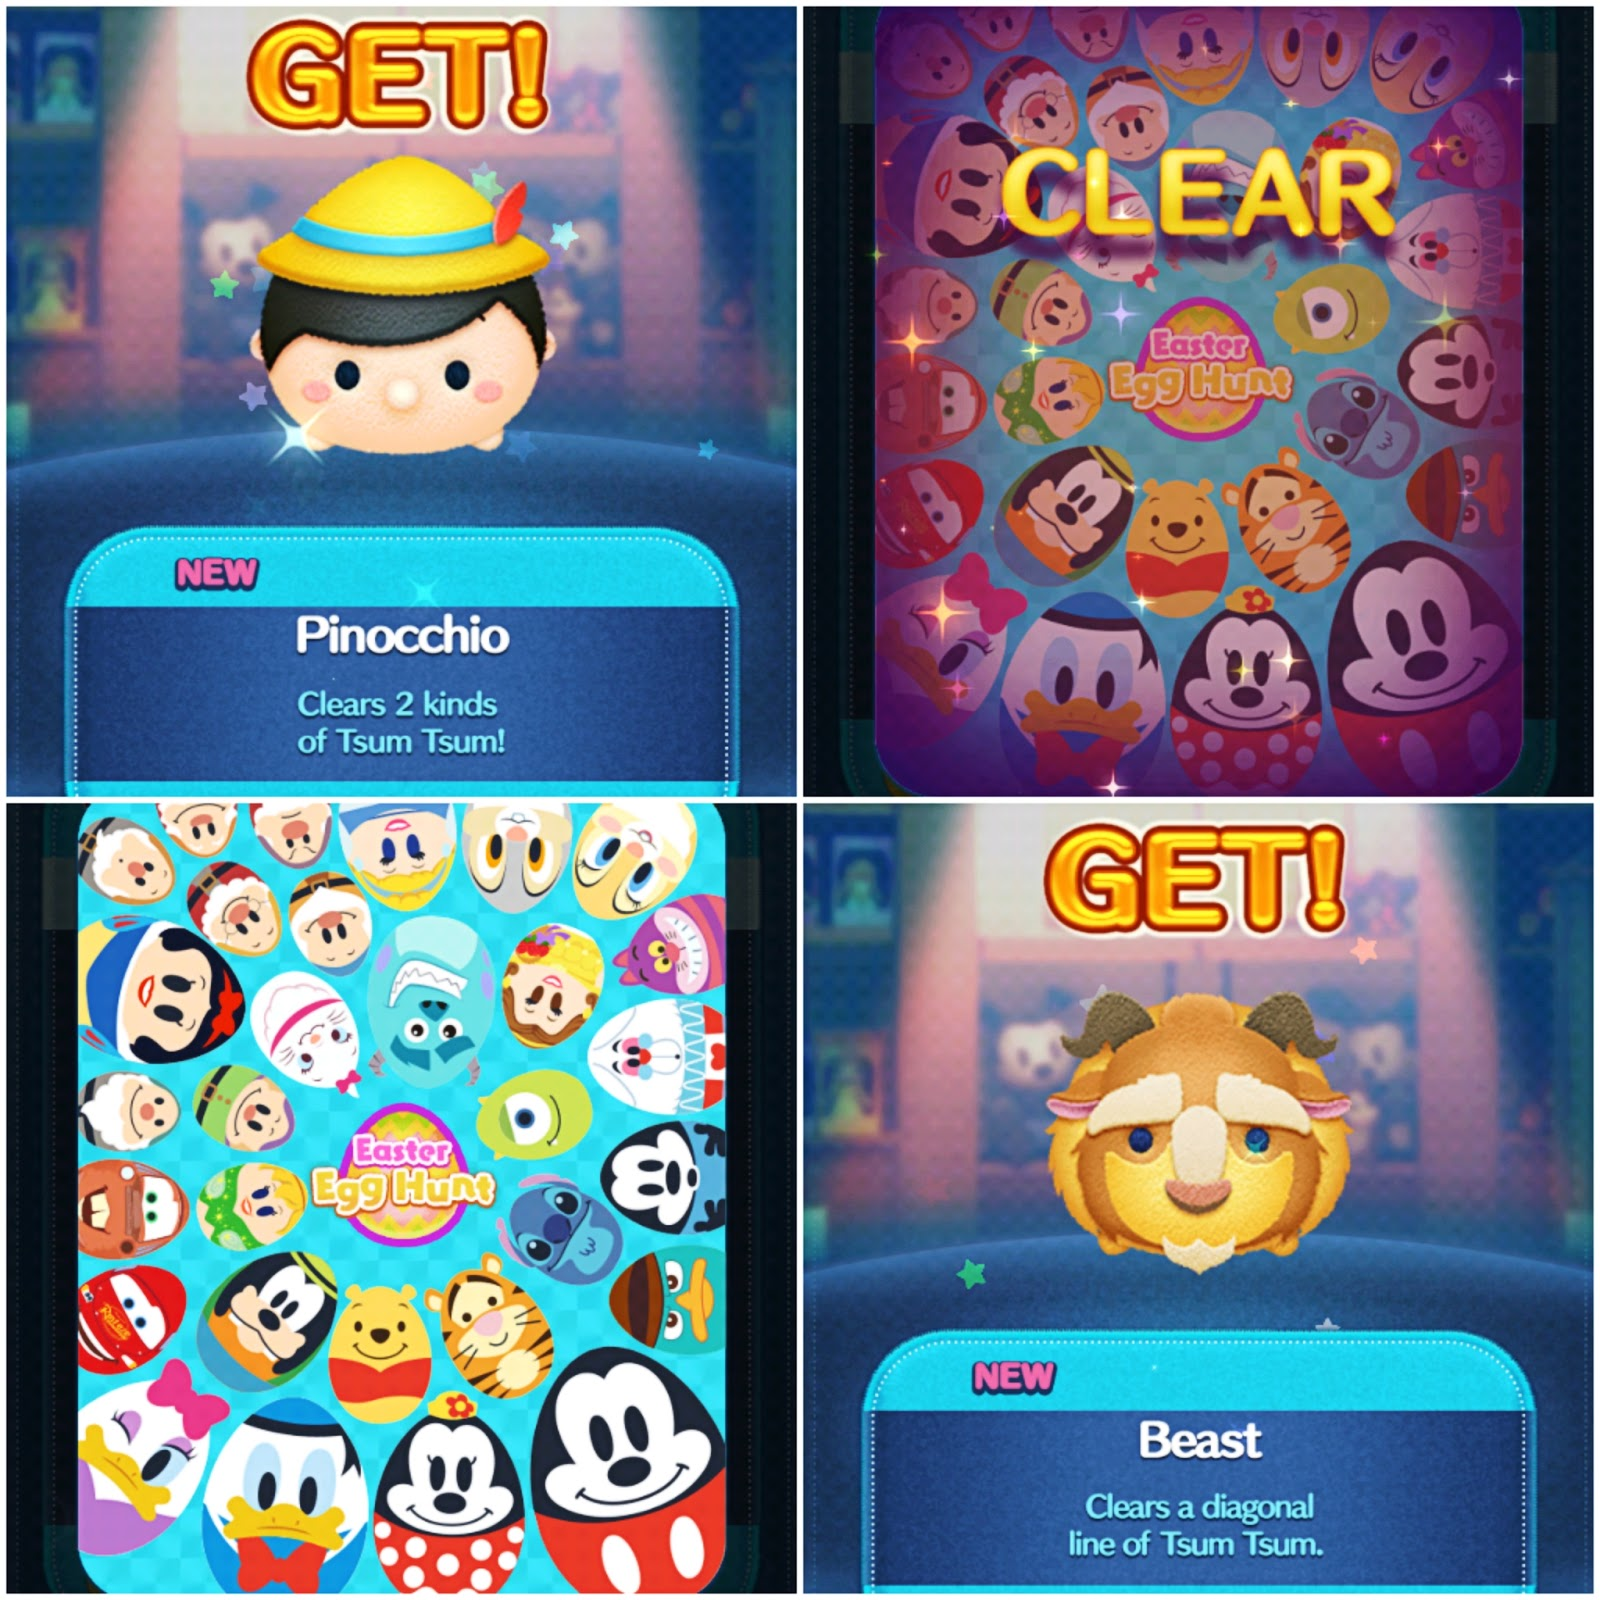 disney tsum tsum app, easter egg hunt, pinocchio, beauty and the beast